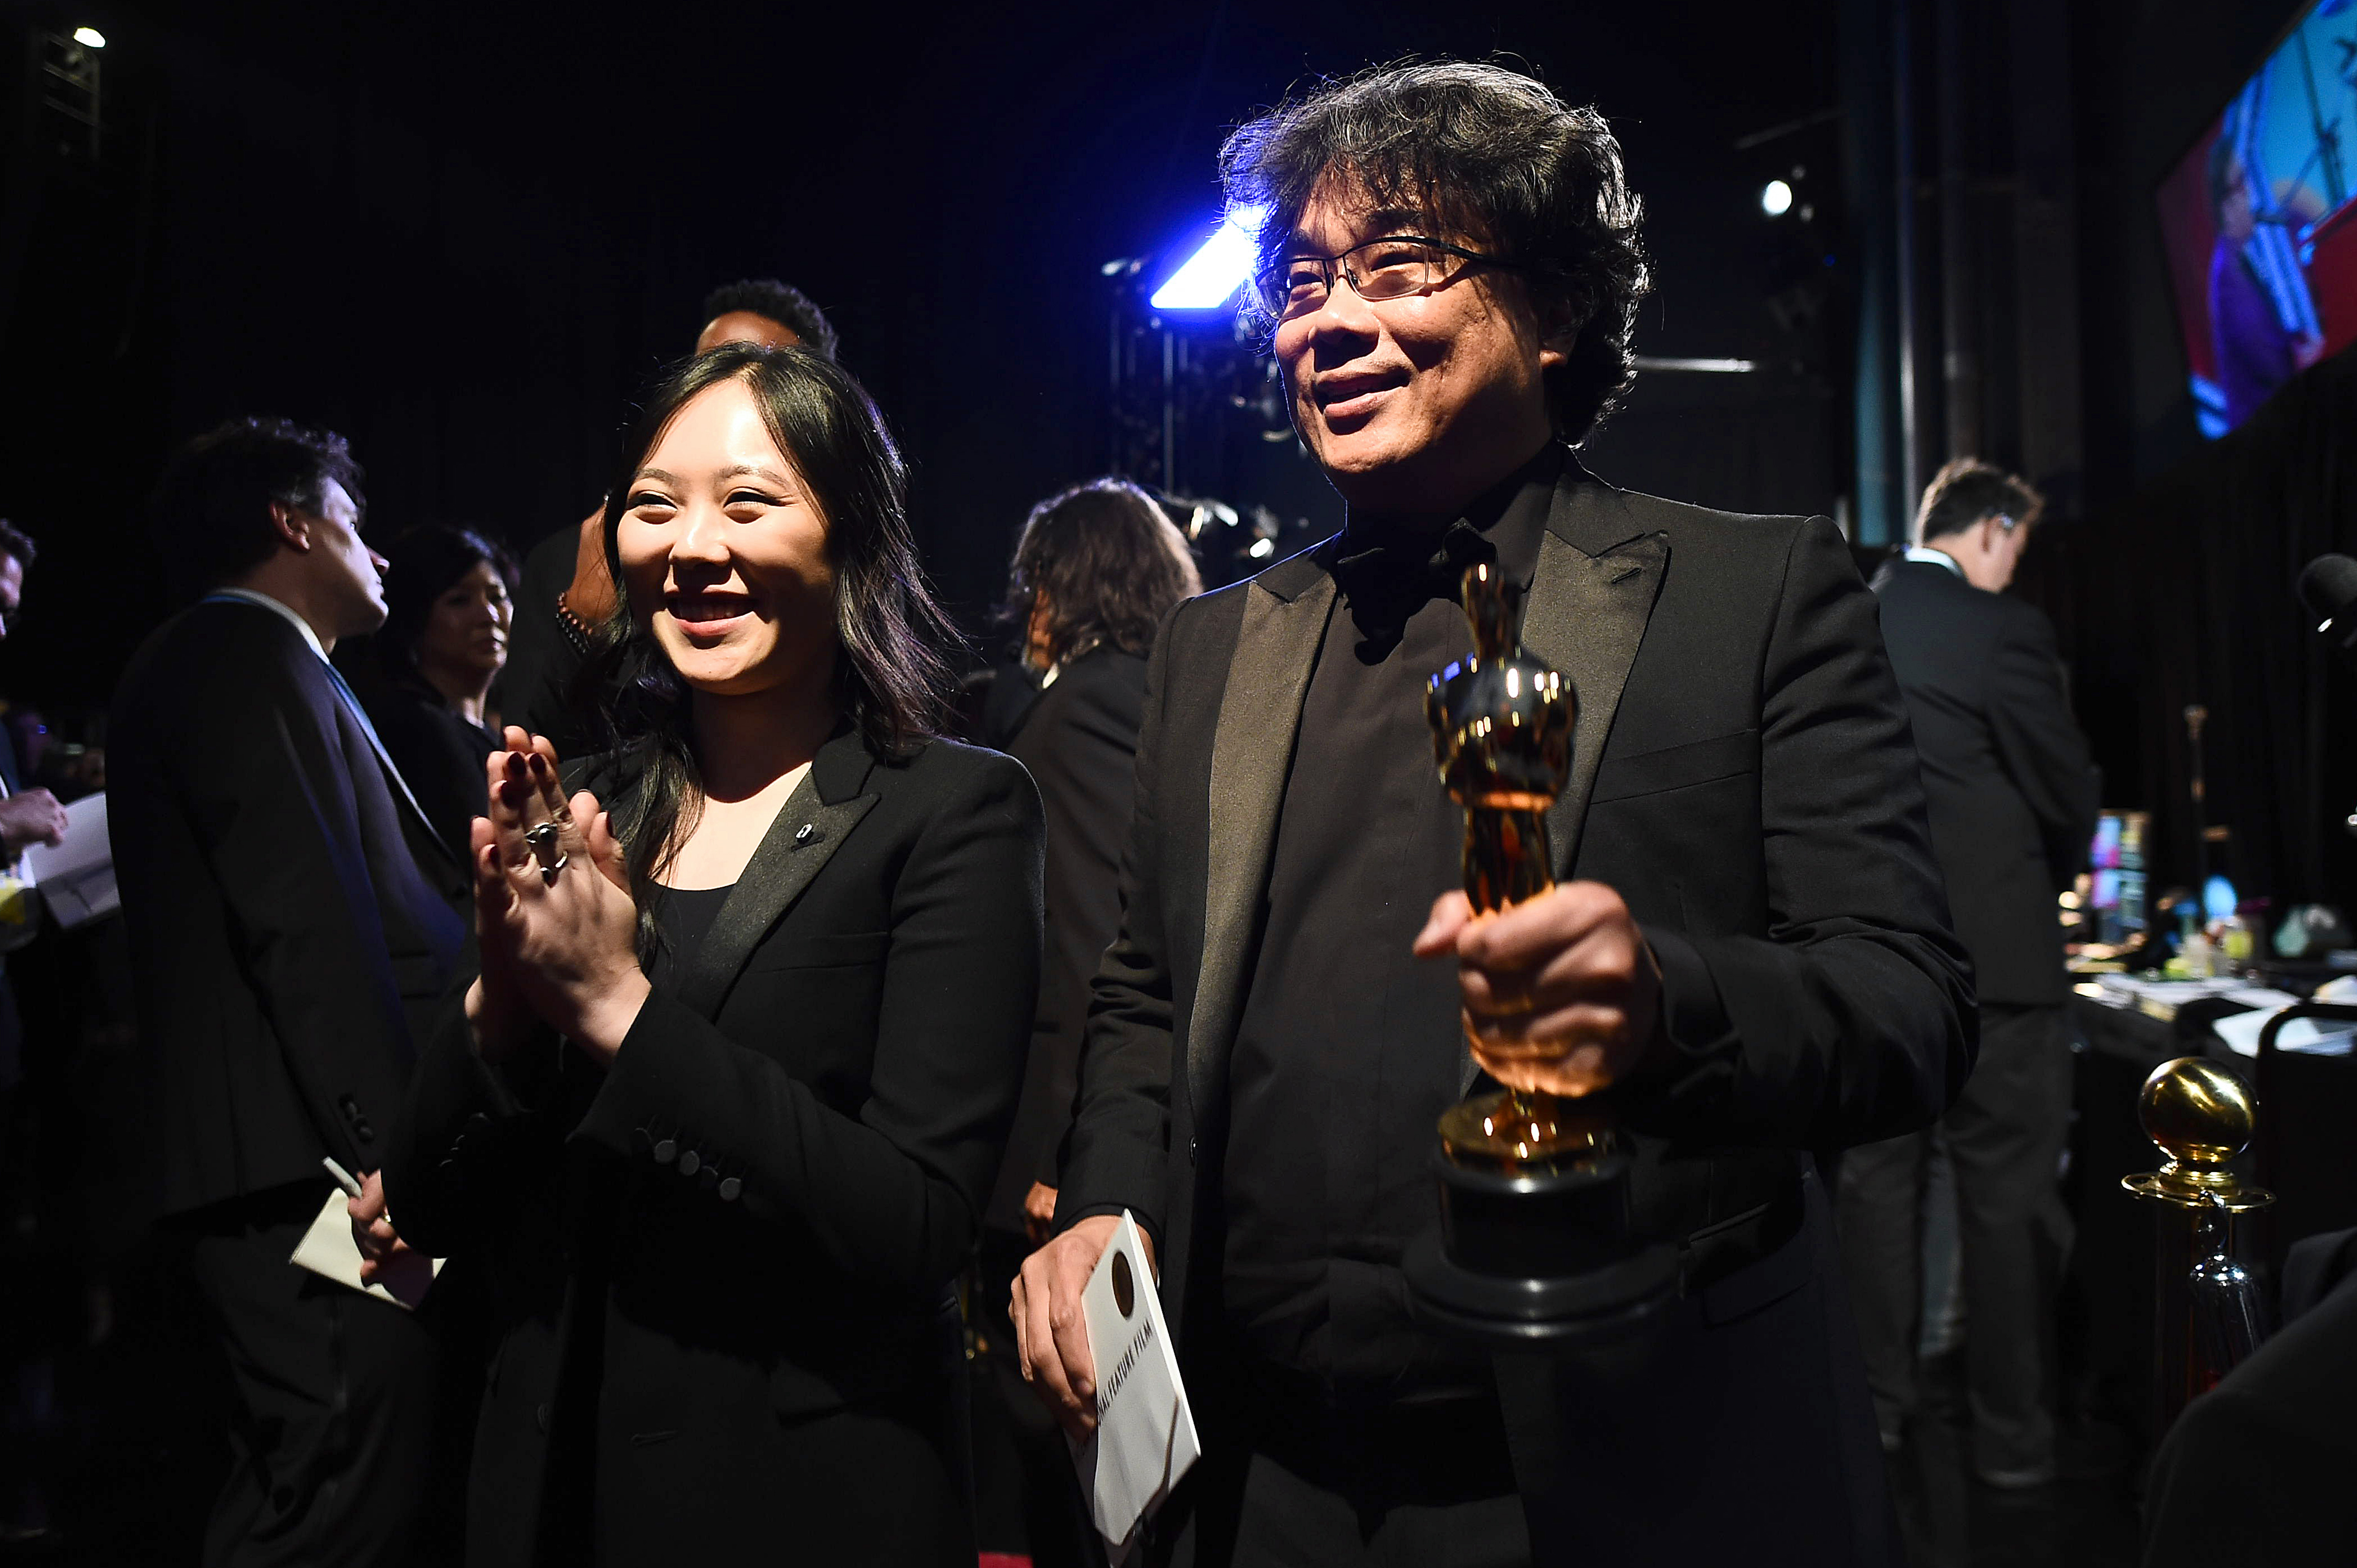 HOLLYWOOD, CALIFORNIA - FEBRUARY 09: In this handout photo provided by A.M.P.A.S. Sharon Choi and Best Director award winner Bong Joon Ho pose backstage during the 92nd Annual Academy Awards at the Dolby Theatre on February 09, 2020 in Hollywood, California. (Photo by Matt Petit - Handout/A.M.P.A.S. via Getty Images)